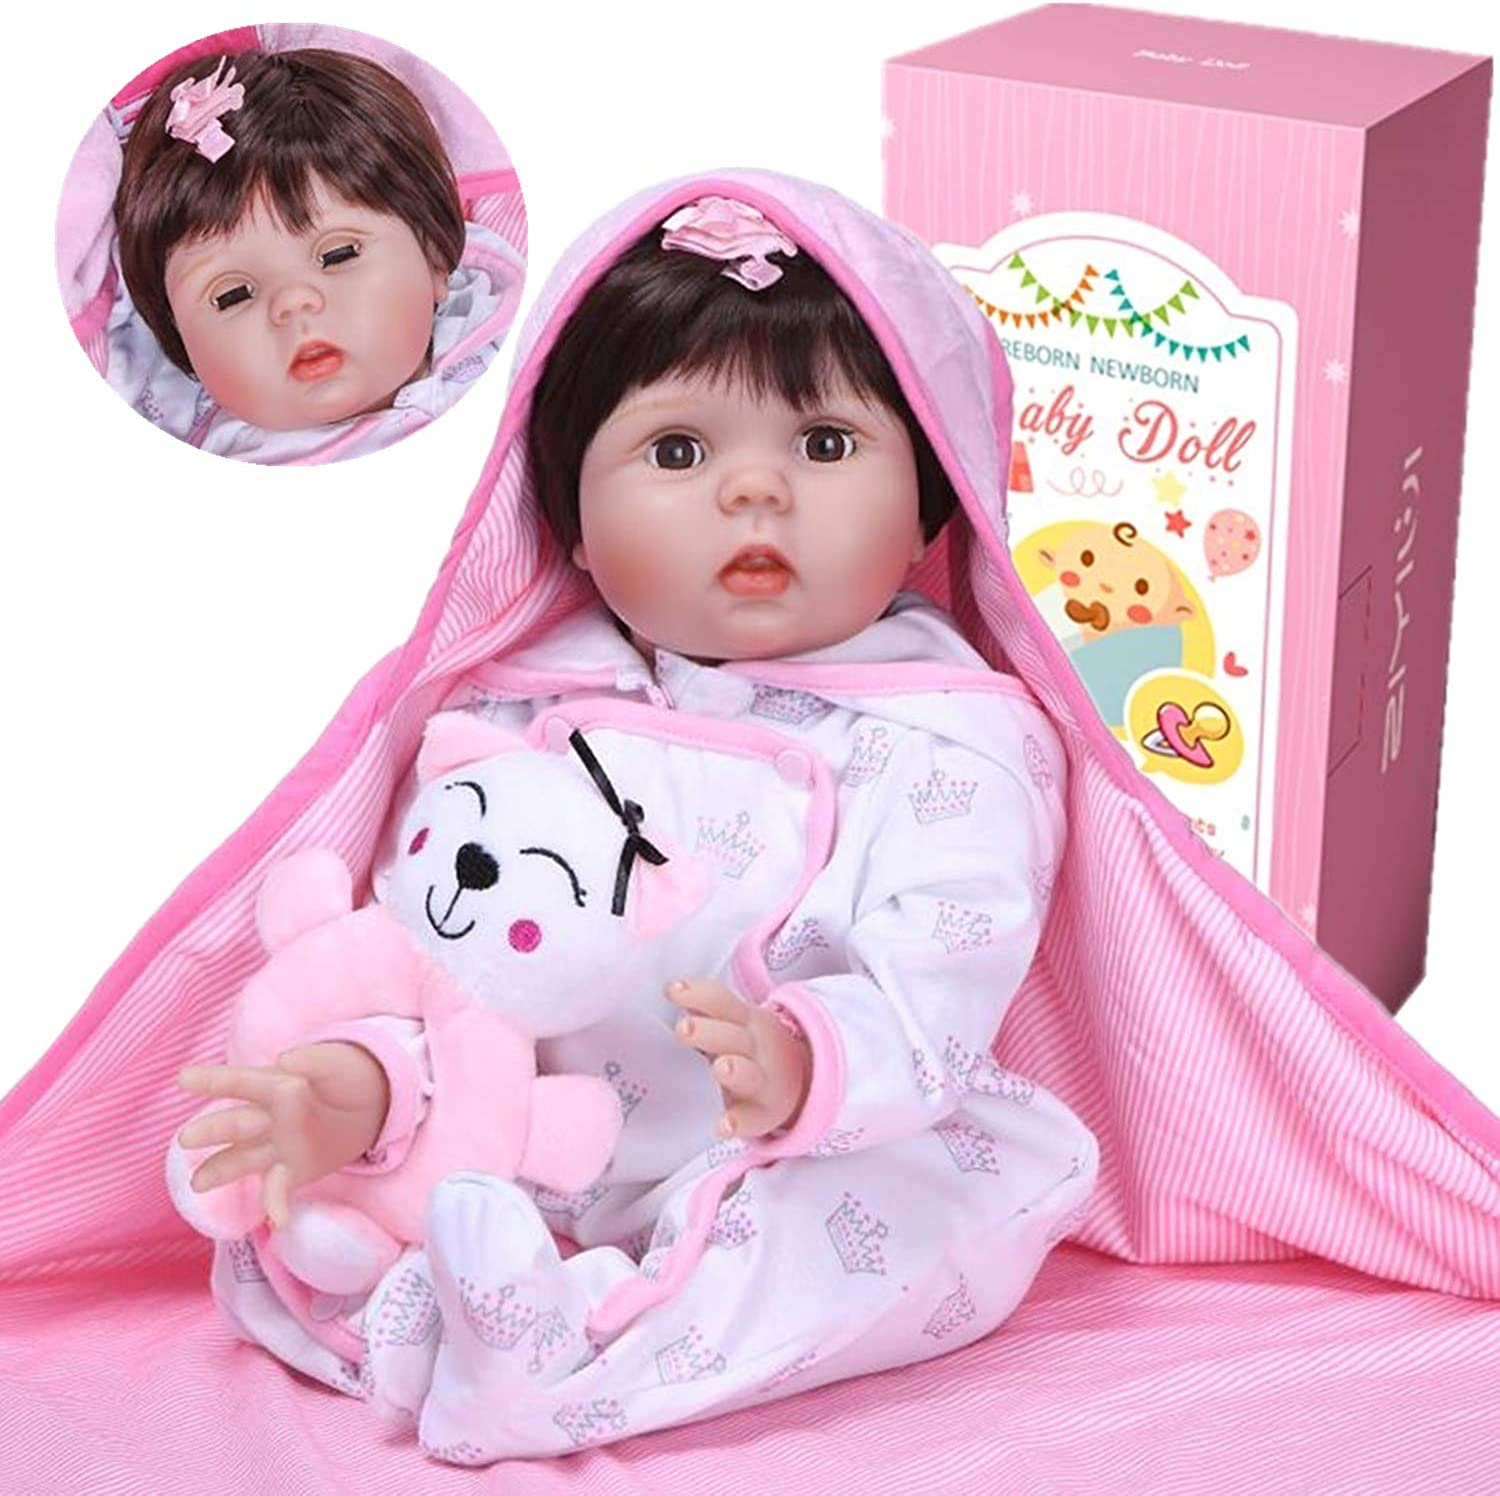 ZIYIUI Realistic Doll able to blink Babies Reborn Baby Dolls Girl Lifelike Silicone Toddler Magnetic Mouth Kids Toys Gifts 22 Inches